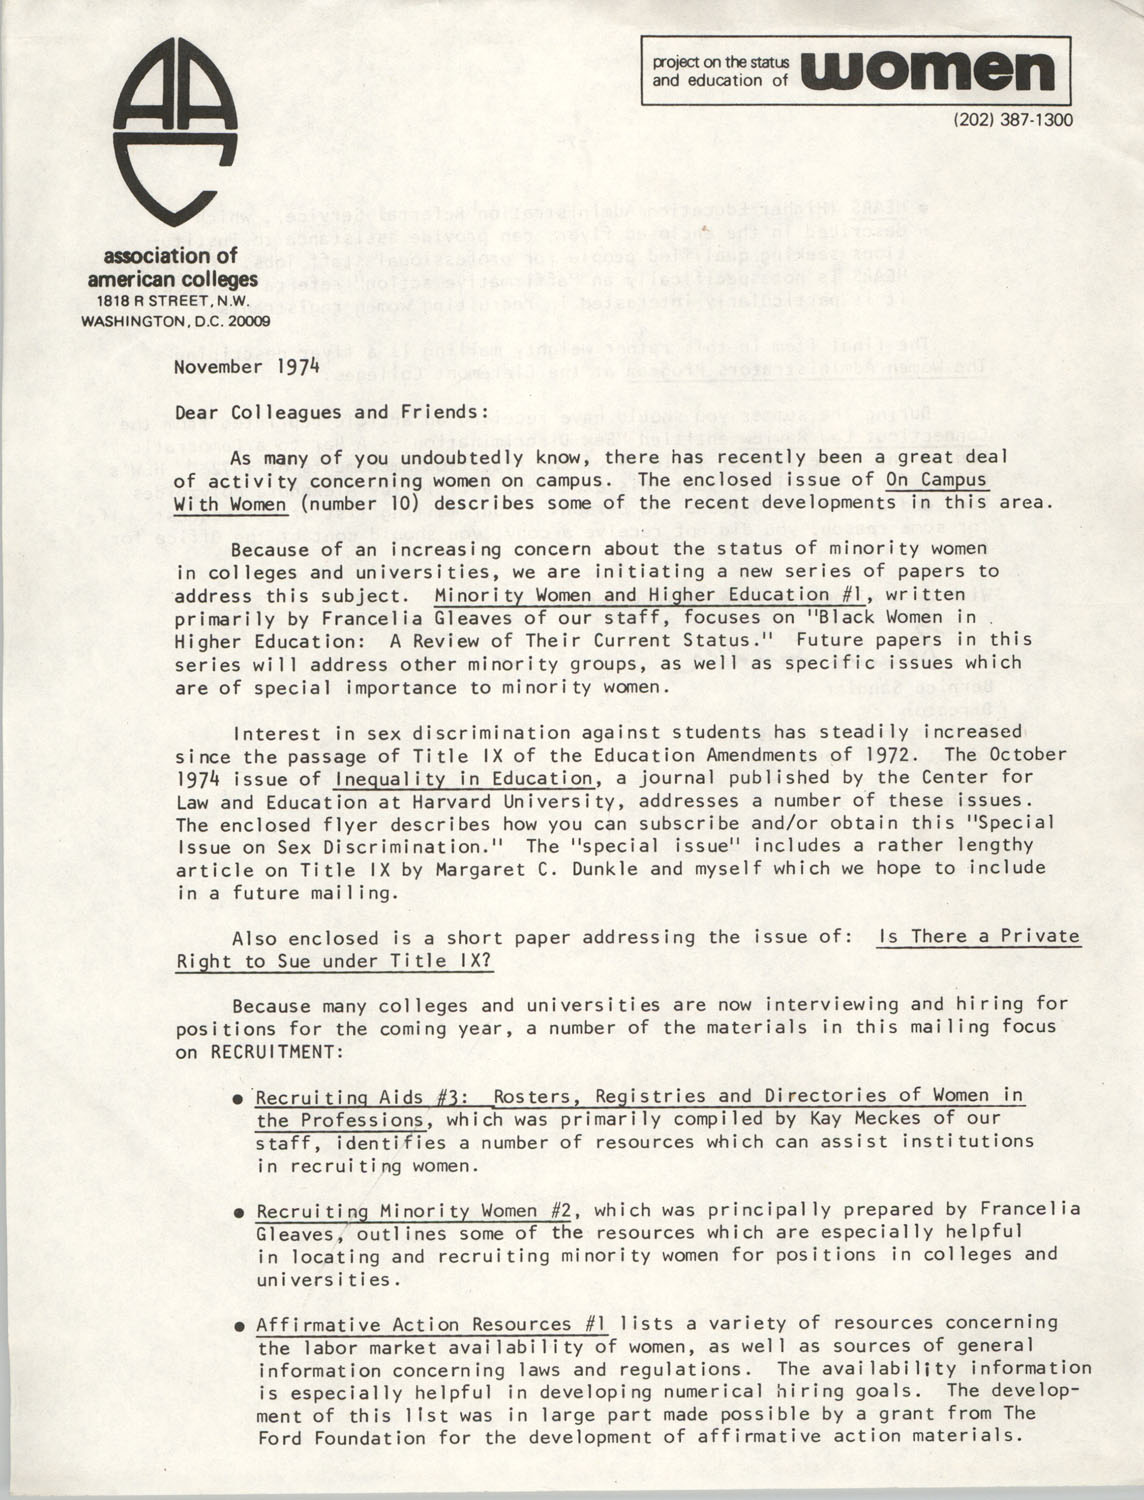 Letter from Bernice Sandler to Association of American Colleges Colleagues and Friends, November 1974, Page 1